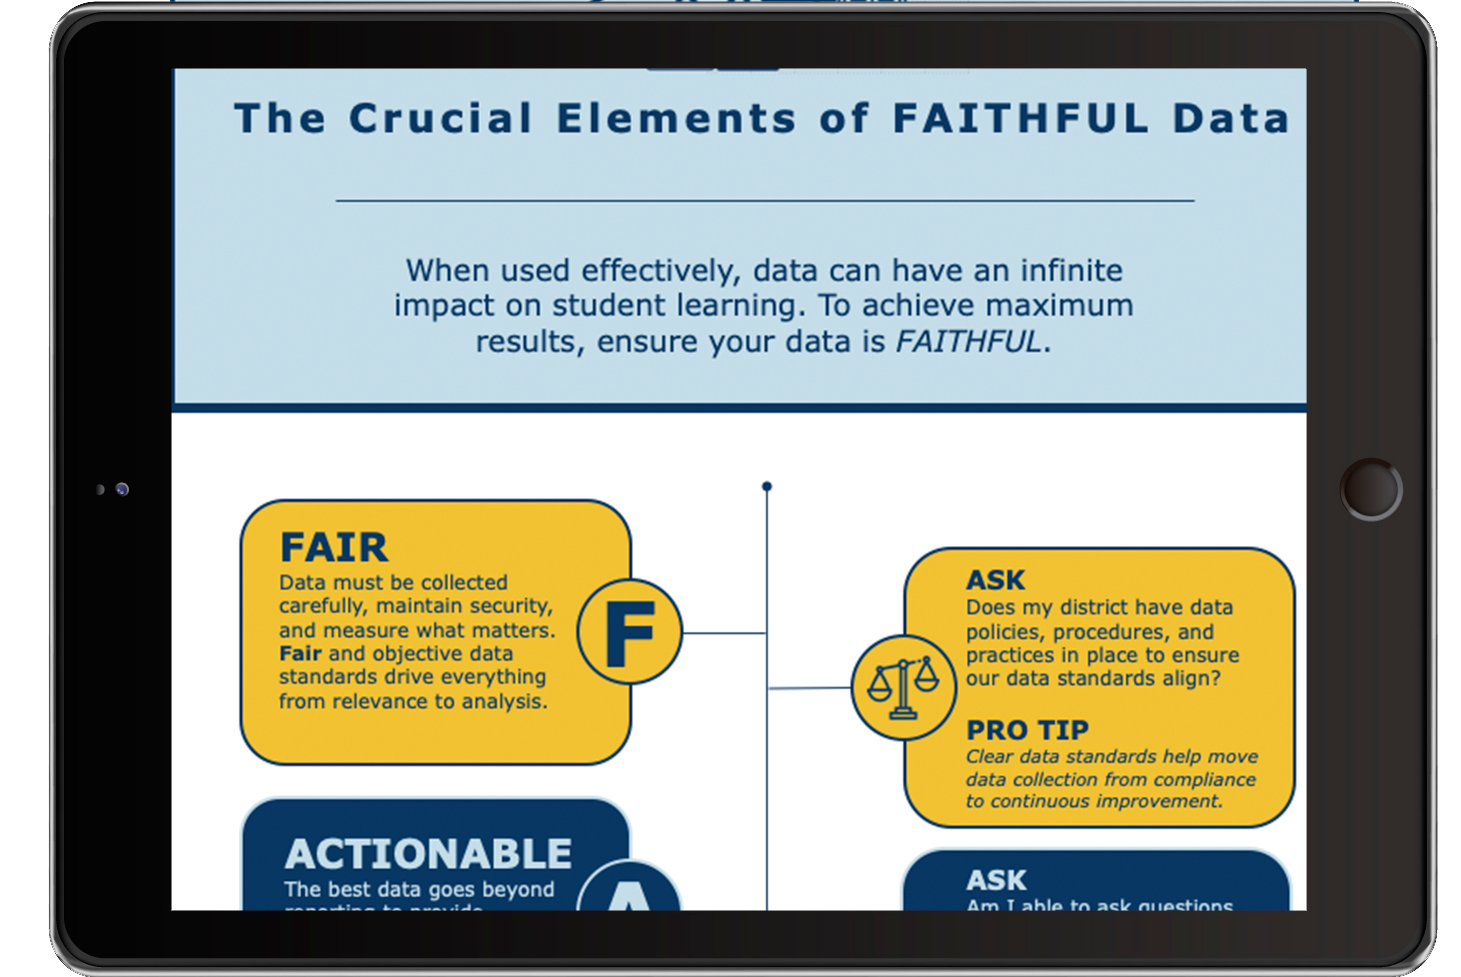 Faithful Data Infographic in Device